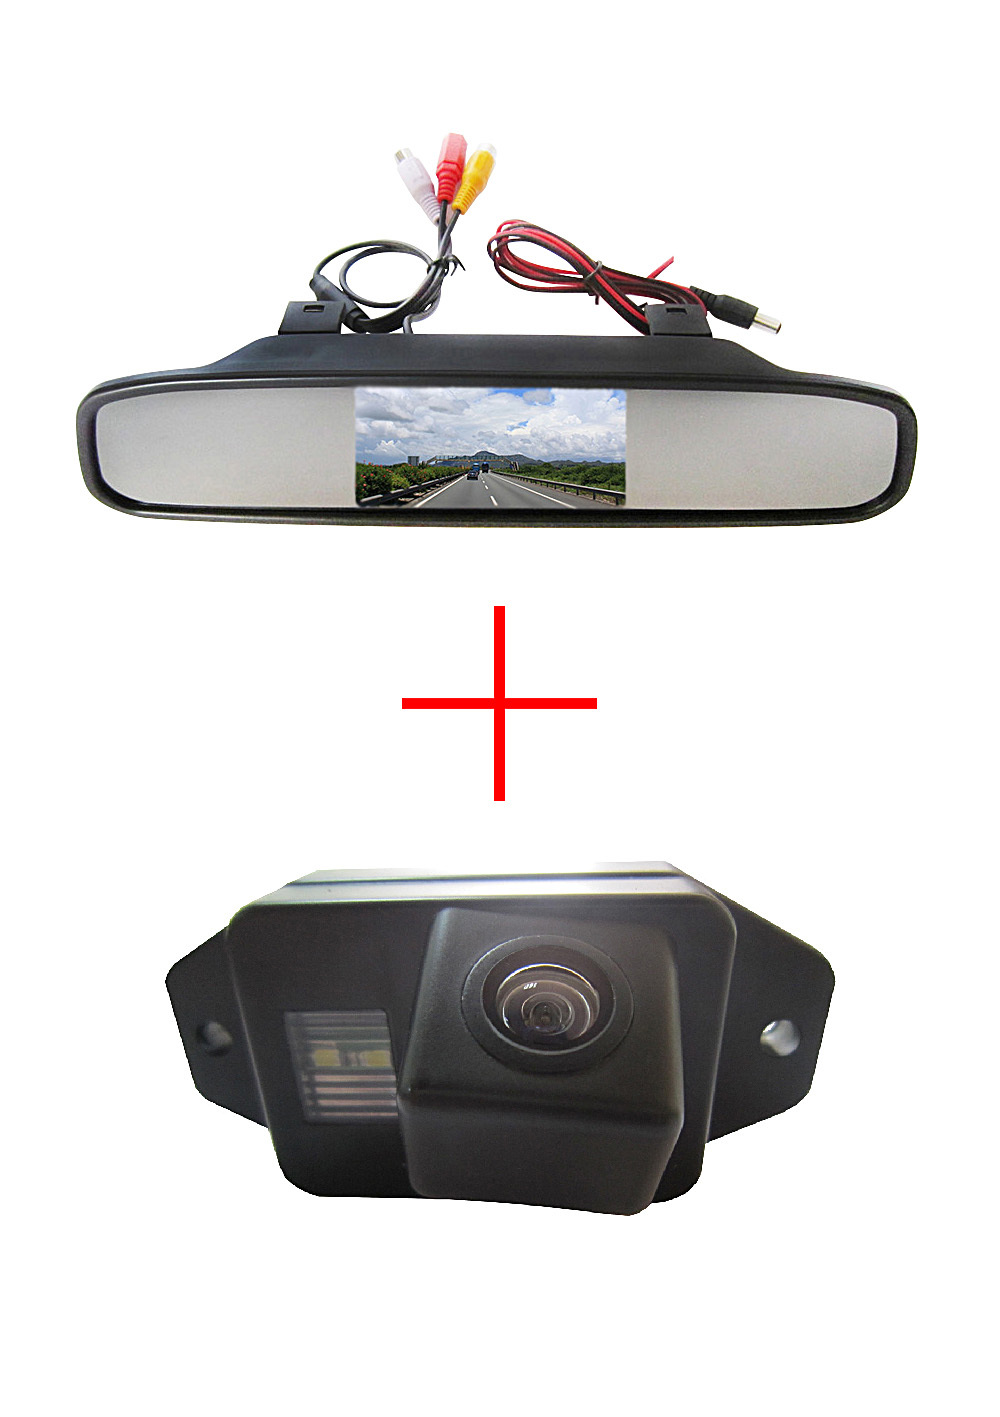 Color CCD Chip Car Rear View Camera for TOYOTA LAND CRUISER PRADO 2700 4000 + 4.3 Inch rearview Mirror Monitor(China)